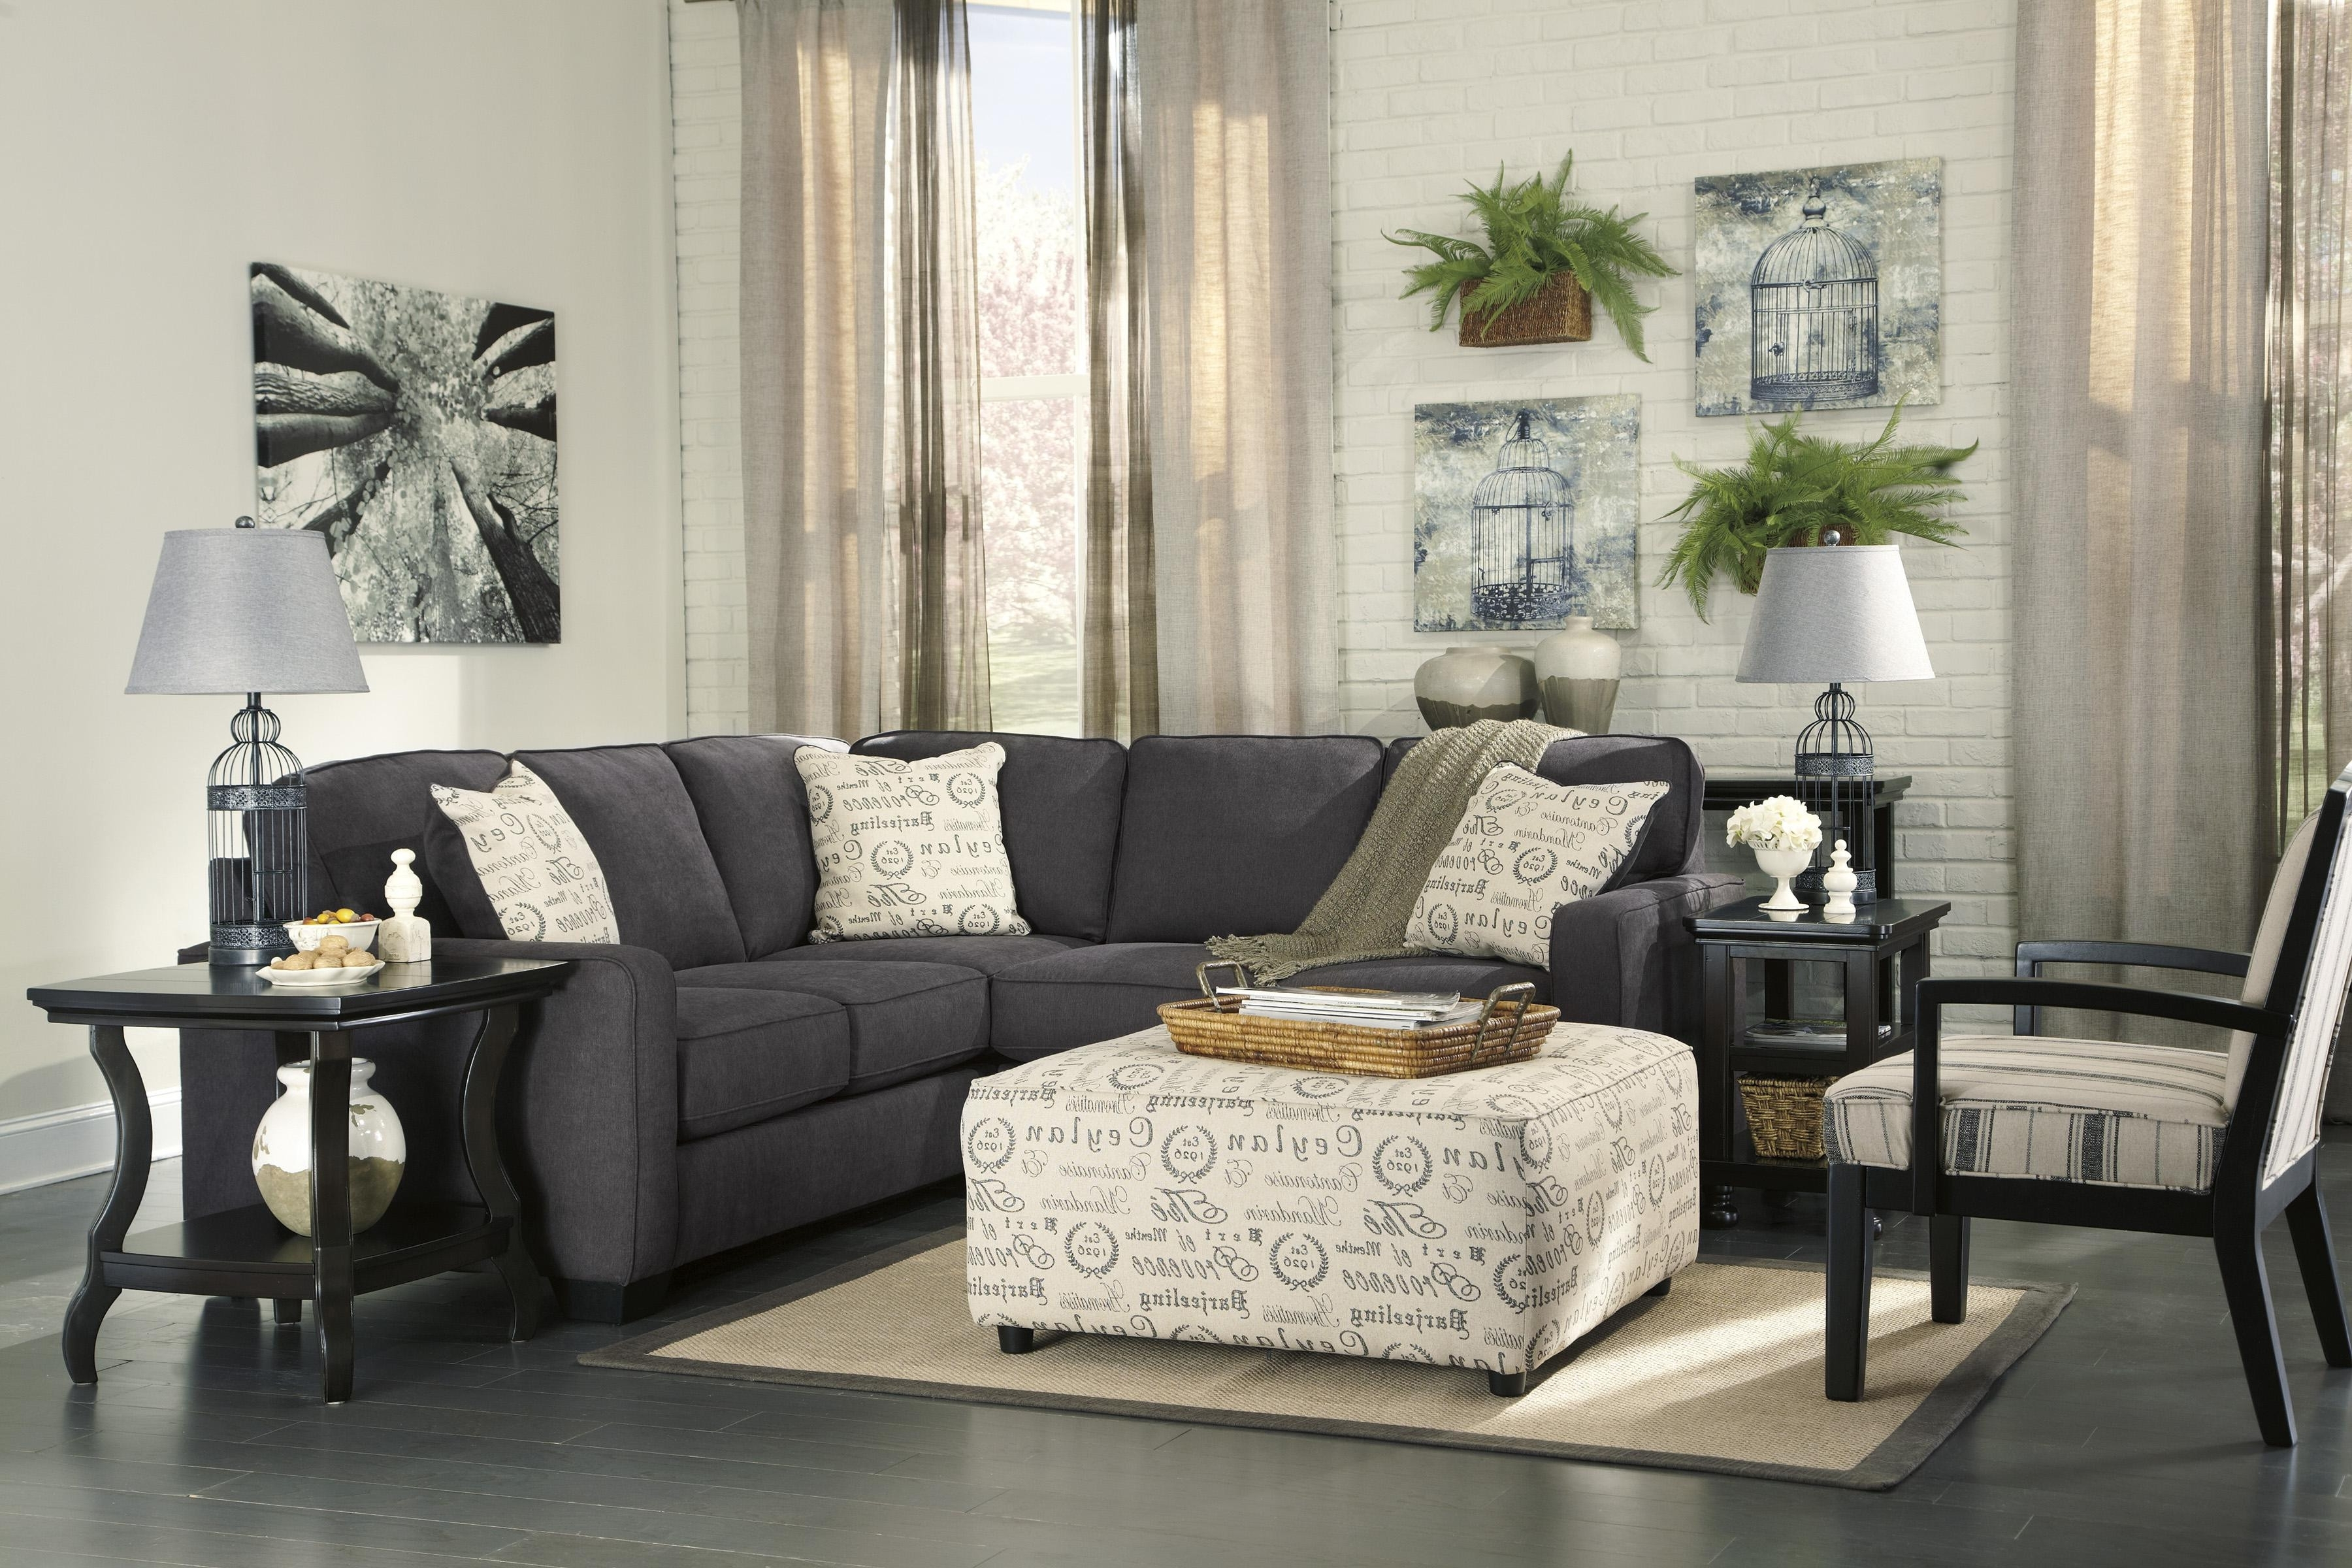 Ivan Smith Sectional Sofas With Regard To Favorite Ivan Smith Furniture Greenville Tx Creative Locations Decoration (View 6 of 20)